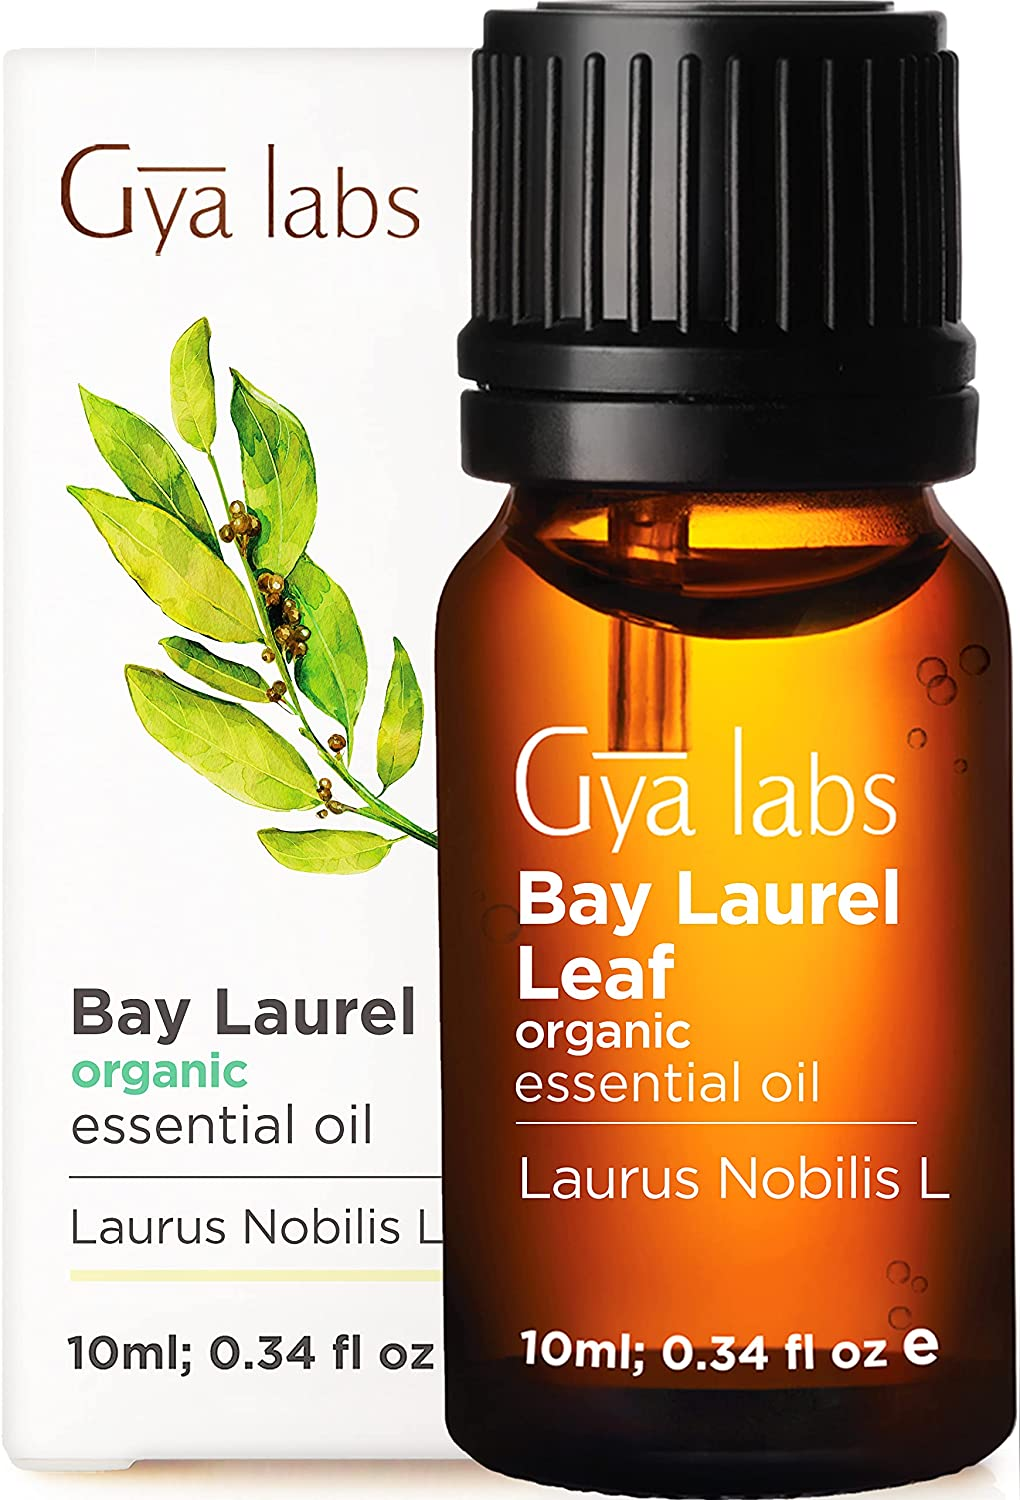 Gya Labs Organic Bay Leaf Essential Oil for Hair Growth and Muscle Pain Relief - Bay Laurel Essential Oil for Sleep and Relaxation - 100 Pure Therapeutic Grade Bay Leaf Oil for Aromatherapy - 10ml